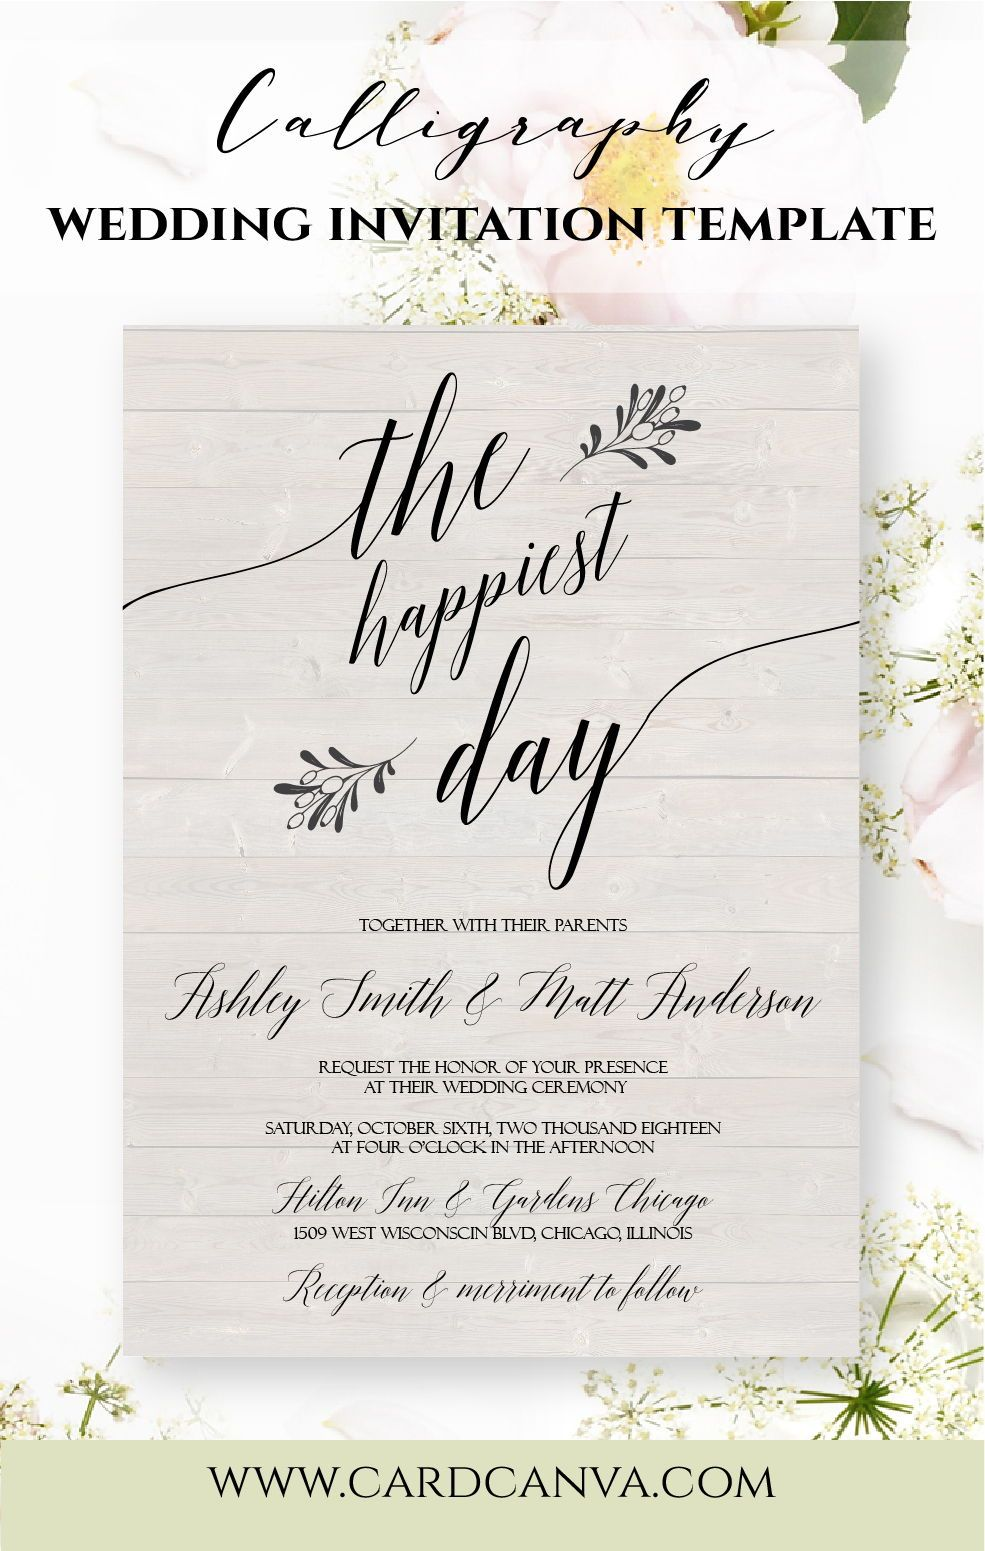 Modern Calligraphy Wedding Invitations, Minimalist Wedding ...